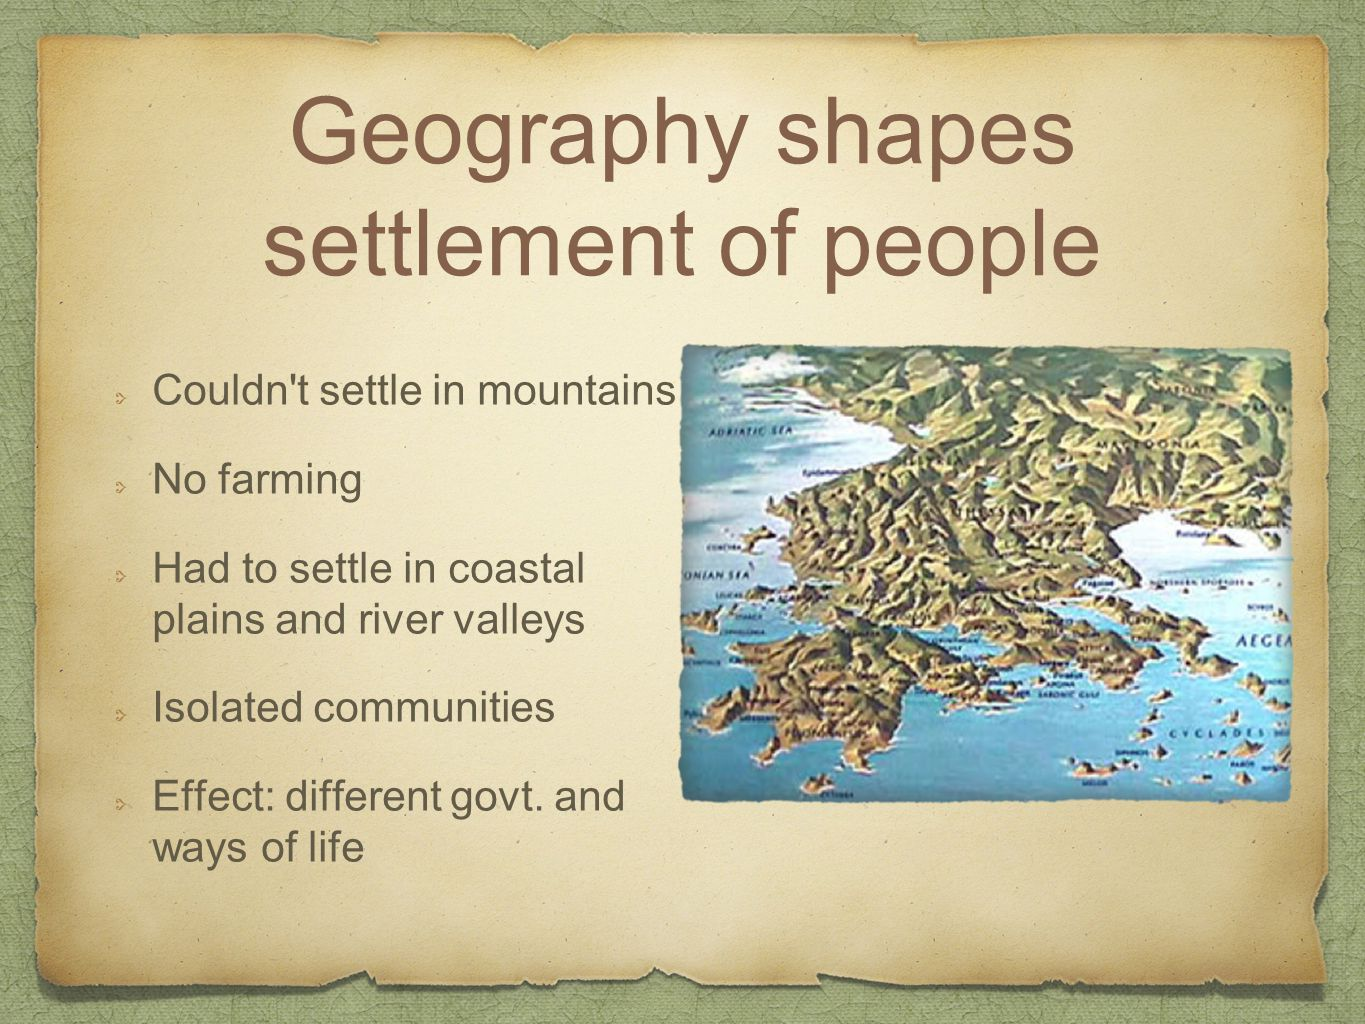 YEAR 3  ANCIENT GREECE  5 lessons moreover AC Greece FINAL copy as well Maps of Ancient Greece   6th Grade Social Stus moreover Clical Greece Out e  Geography   Early Culture    ppt download likewise Ancient Egypt Geography Lesson Plans   Worksheets together with Ancient Greece  The Geography of Greece   PlanBee Single Lesson likewise The Persian Wars  World Geography and Civilizations as well ancient greece map for coloring the Greeks copy their culture from moreover Match Up Worksheet Geography For Grade Free Printable Worksheets 6th furthermore Greek Landmarks   Percy Jackson   Pinterest   Greek  Ancient Greece additionally Ancient Greece Map Worksheet Photos   Beatlesblogcarnival   Places as well Geography   Mrs  Penrod's 6th grade Social Stus Greece Webquest besides English worksheets  Ancient Greece Geography further Ancient Greece   Geography Cause and Effect by Chuck Behm   TpT also Week 35  A History Map   Ancient Greece  Daily Geography Practice likewise Geography of Ancient Greece   ppt video online download. on geography of ancient greece worksheet